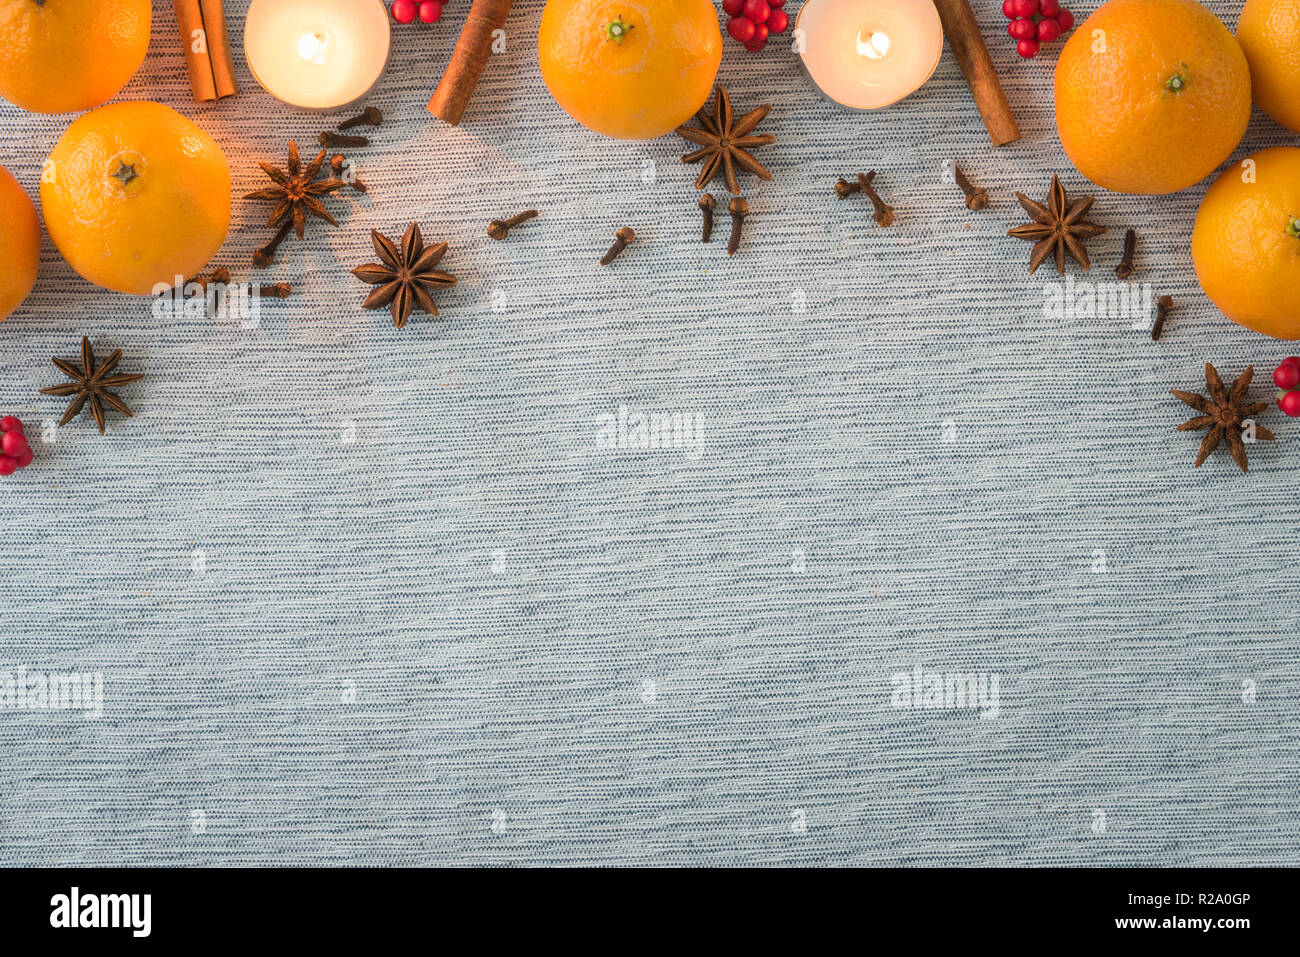 Christmas arrangement of holiday spices, oranges and candles - Stock Image